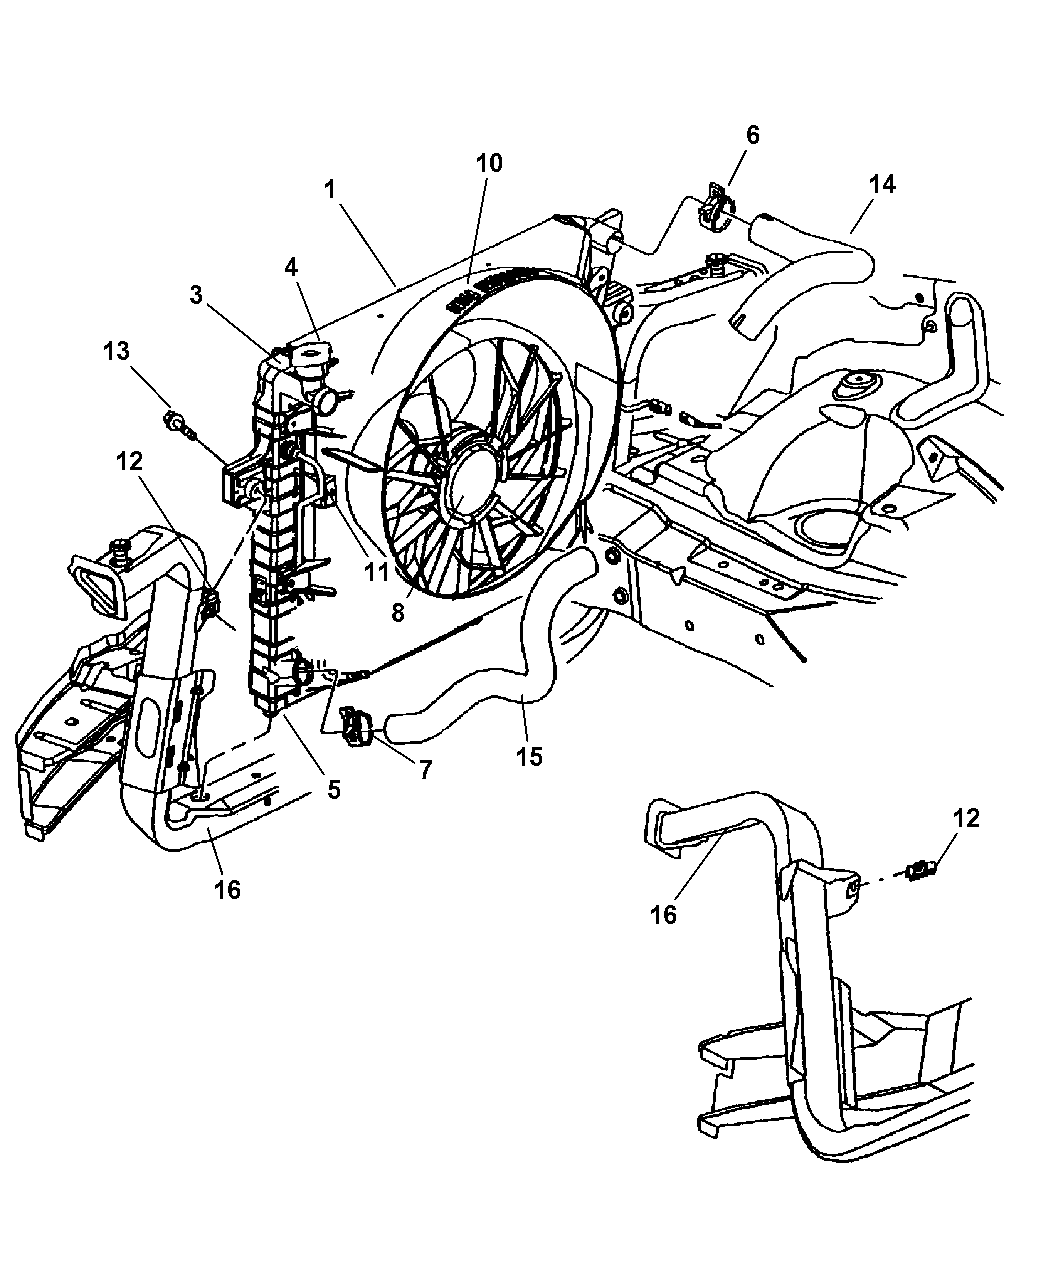 [DIAGRAM_4FR]  2004 Jeep Grand Cherokee 4 0l Engine Coolant Diagram - 1996 Lincoln Fuse  Box - podewiring.yenpancane.jeanjaures37.fr | 2004 Jeep Grand Cherokee 4 0l Engine Coolant Diagram |  | Wiring Diagram Resource